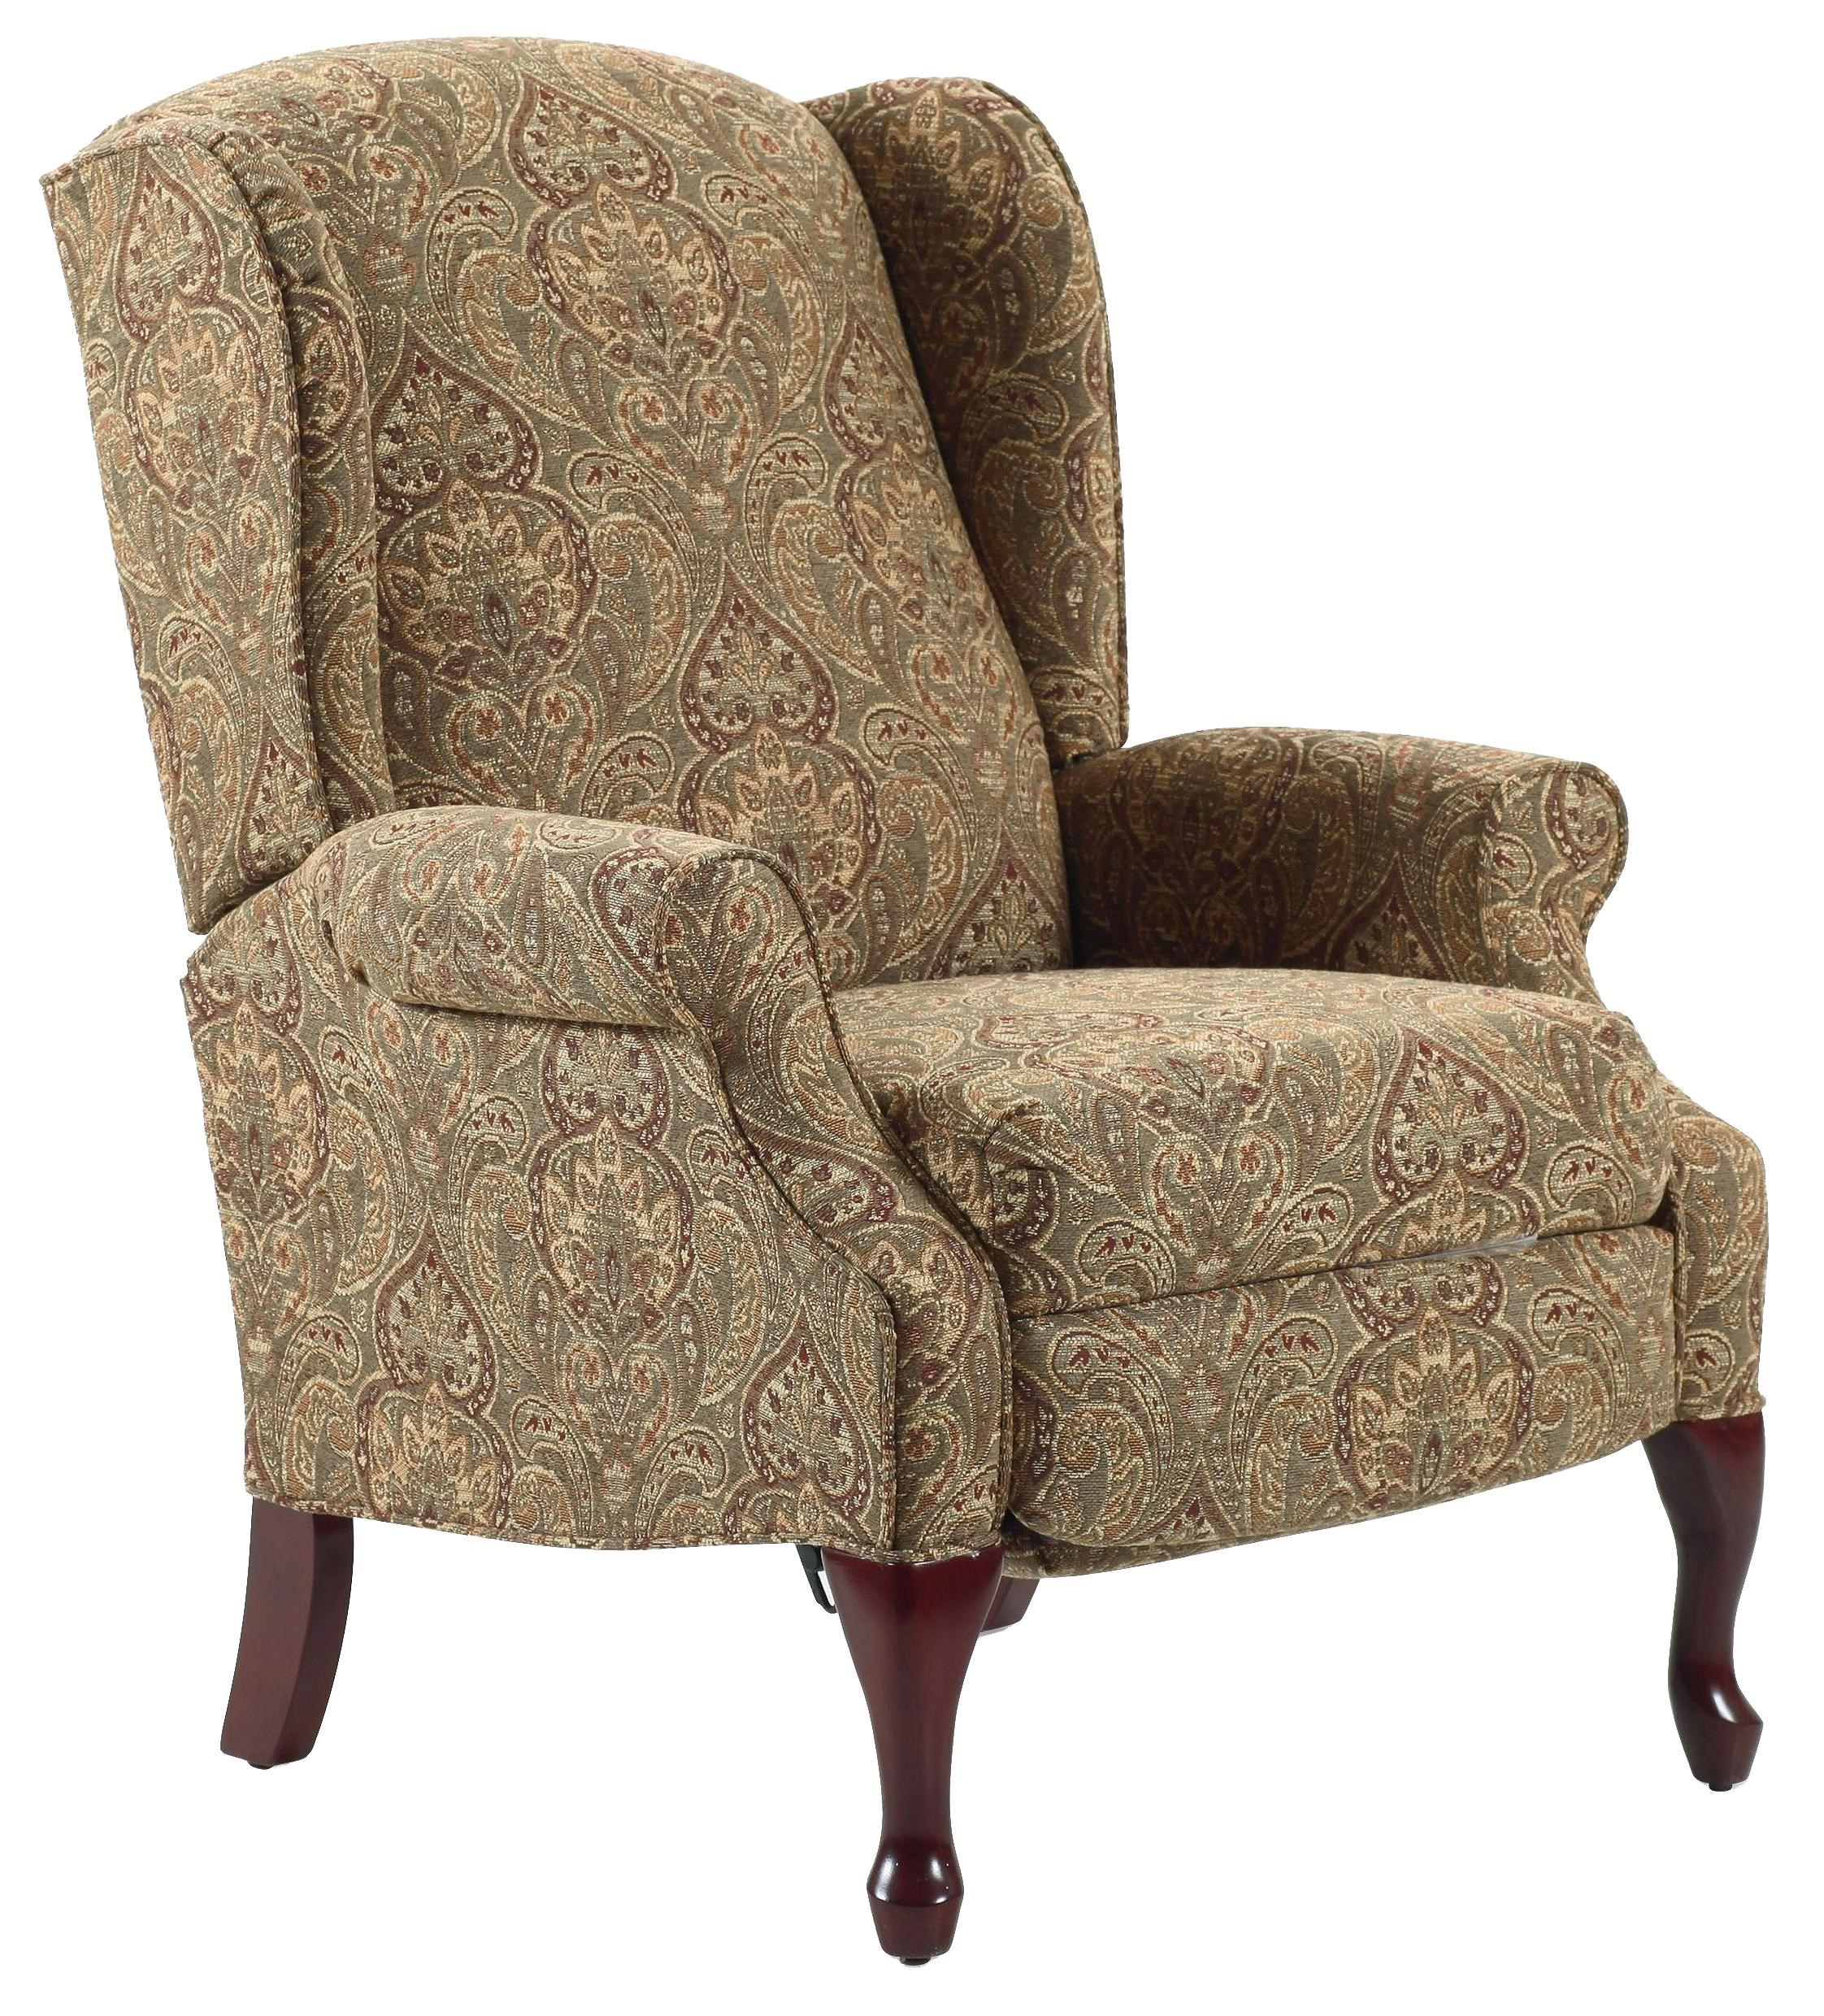 Lane Recliners H&ton Traditional High Leg Recliner in Wing Chair Style - Hudson\u0027s Furniture - High Leg Recliner  sc 1 st  Hudson\u0027s Furniture & Lane Recliners Hampton Traditional High Leg Recliner in Wing Chair ... islam-shia.org